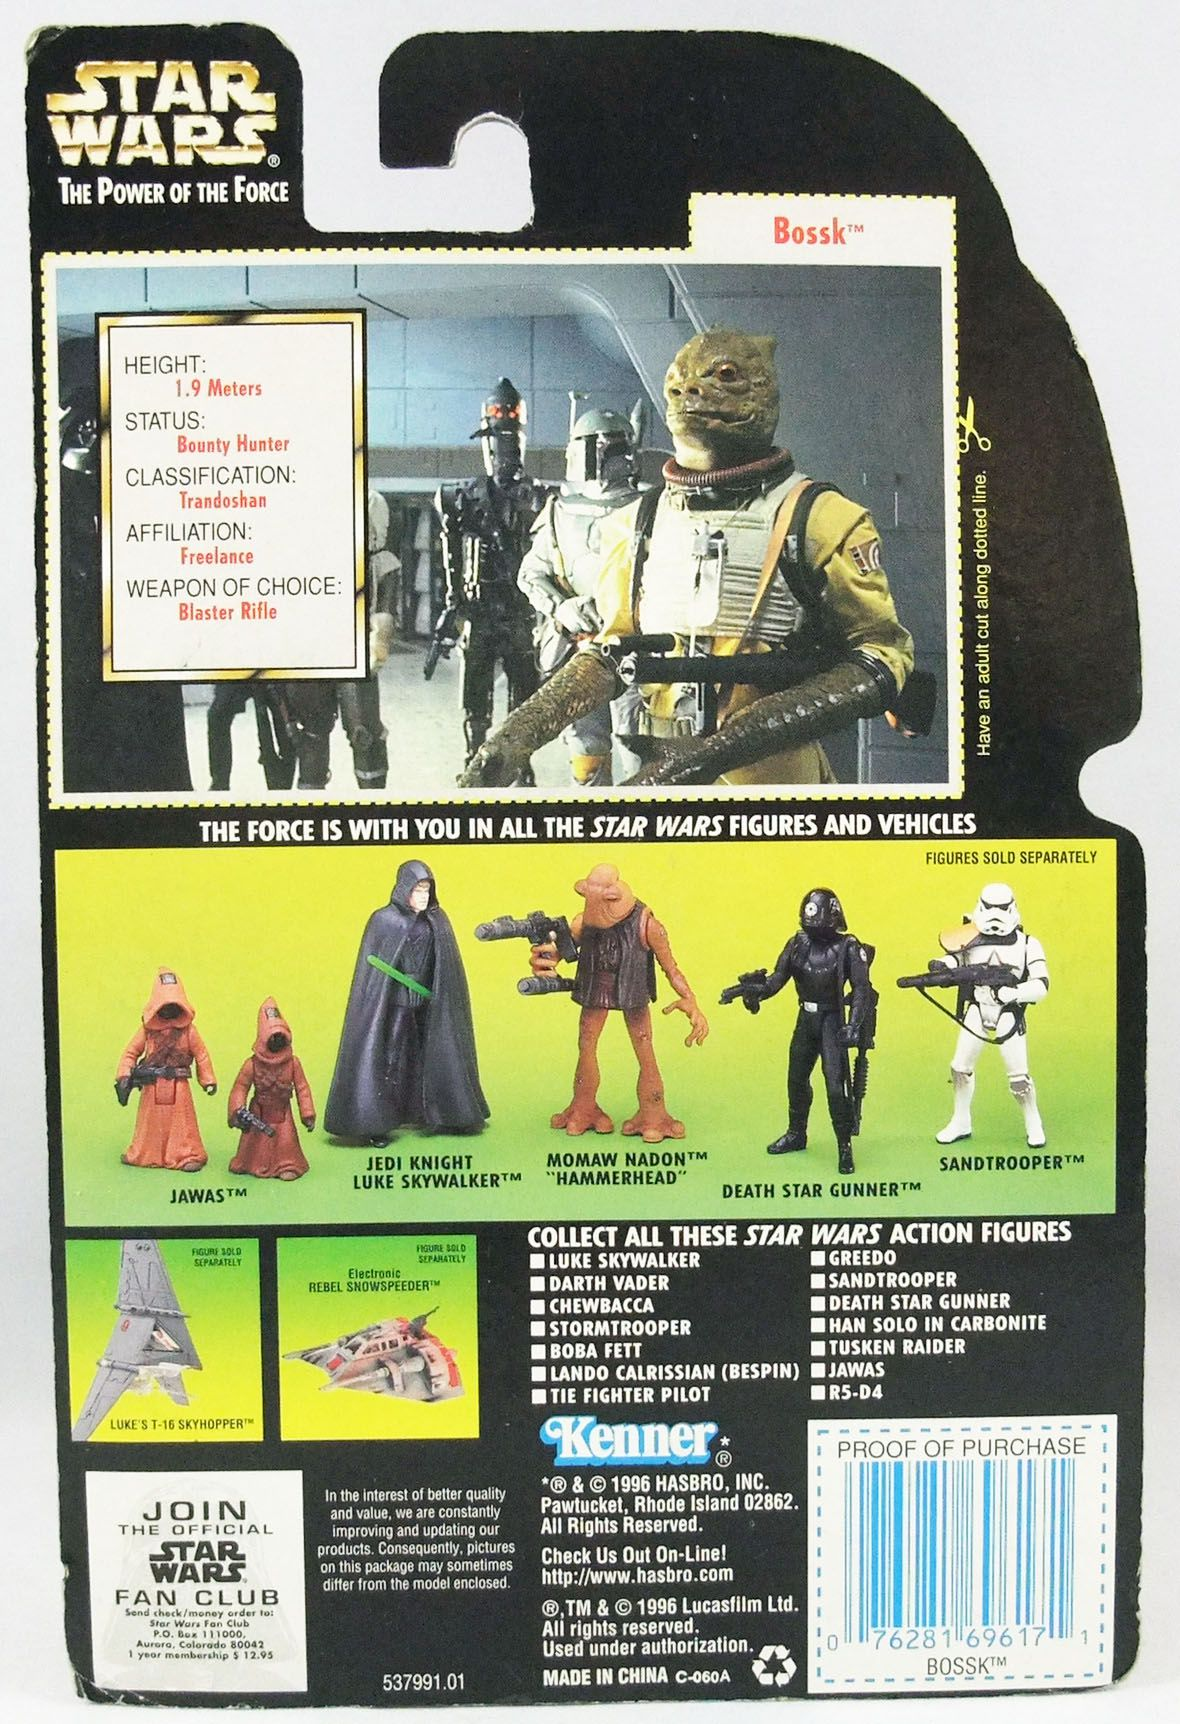 Star Wars (The Power of the Force) - Kenner - Bossk